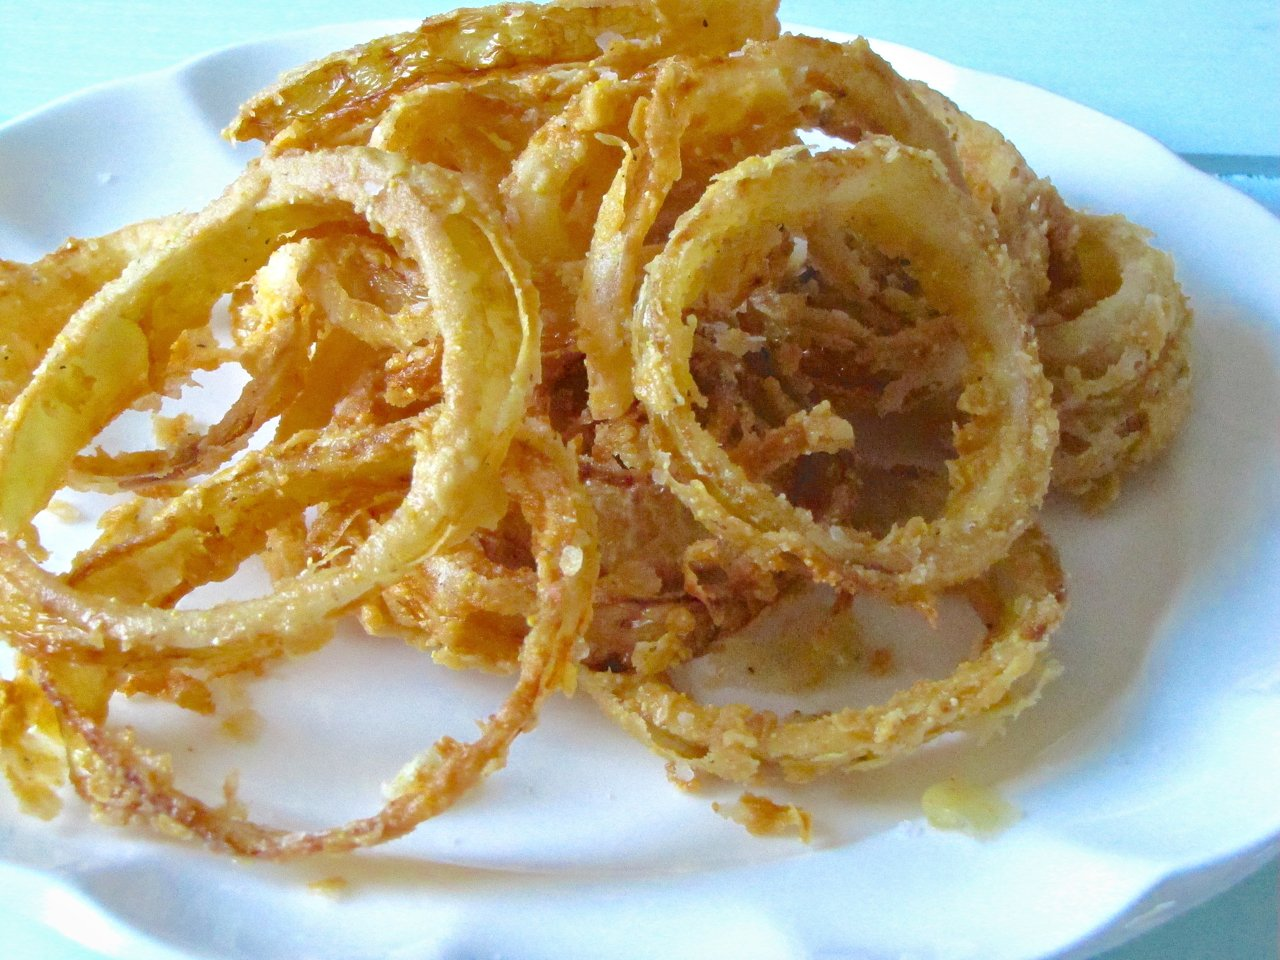 Cornmeal-Fried Onion Rings